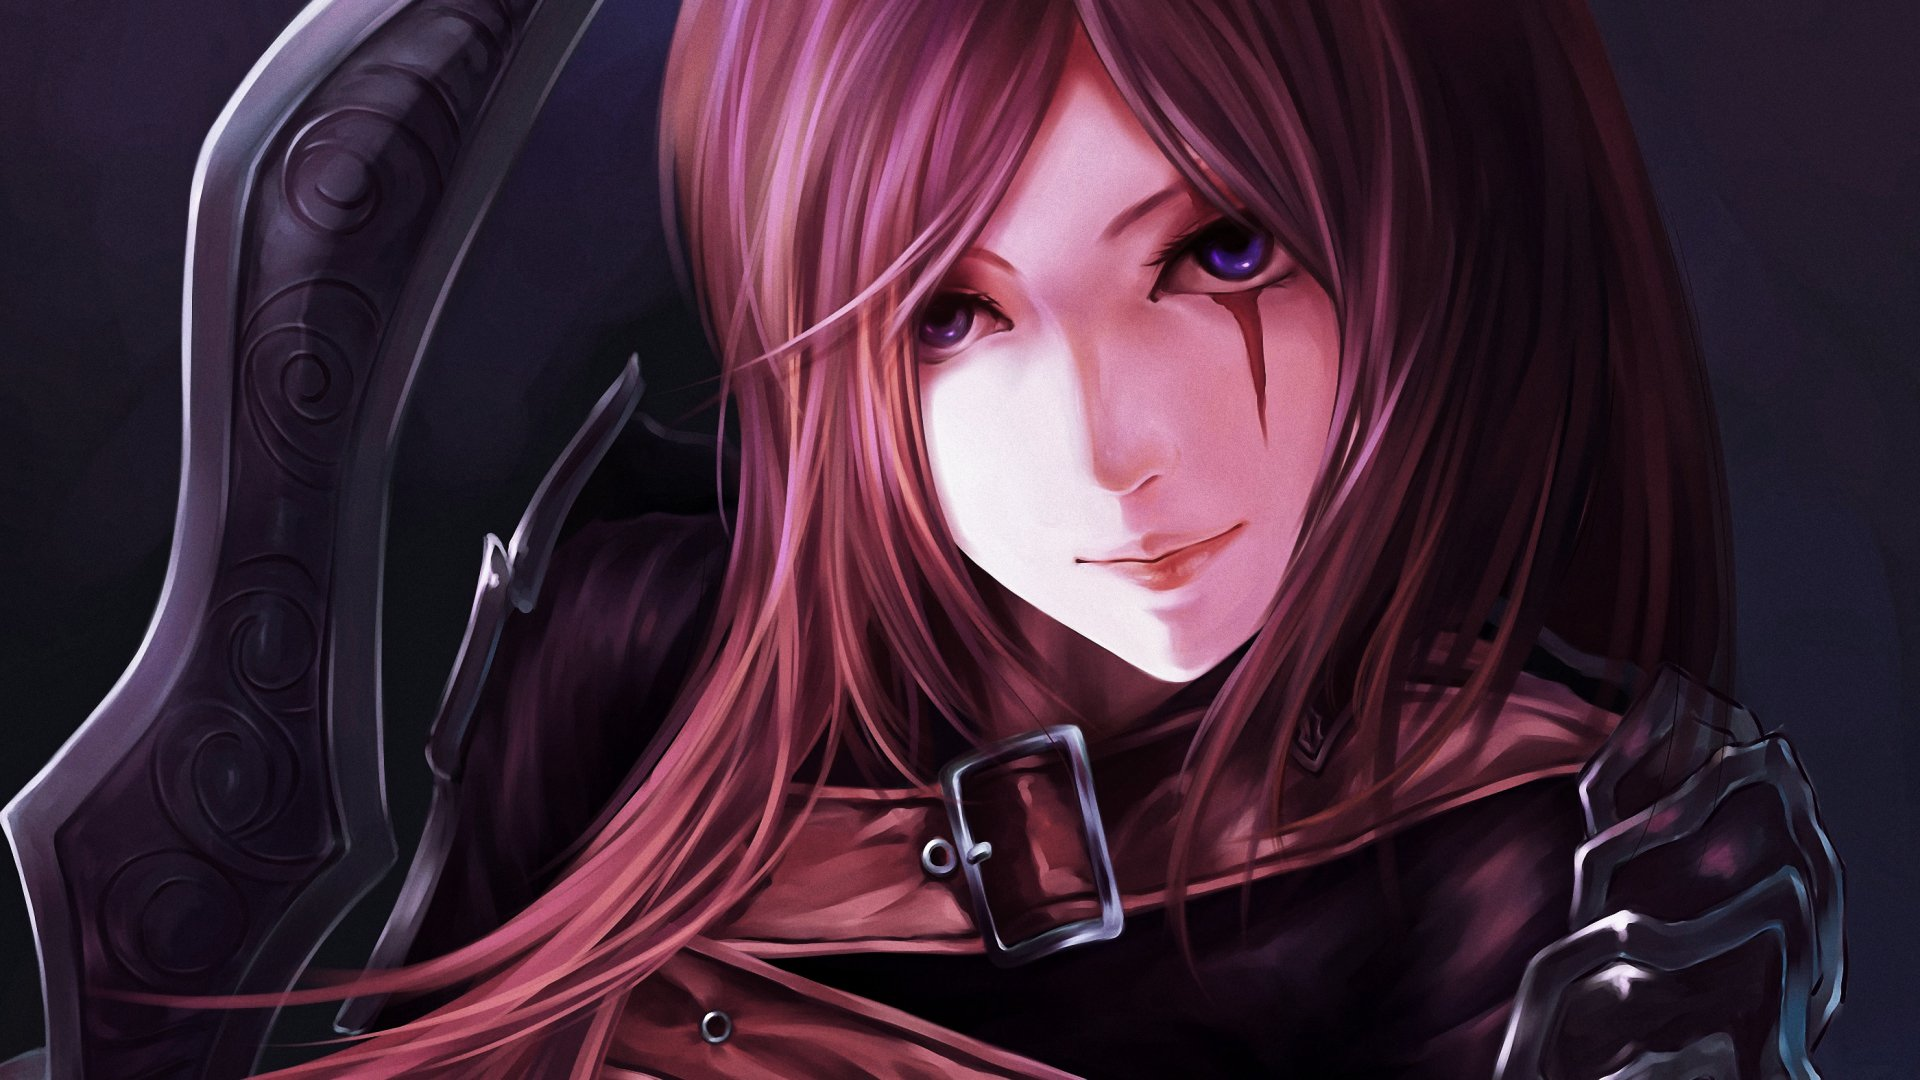 Video Game - League Of Legends  Katarina (League Of Legends) Anime Girl Weapon Blue Eyes Wallpaper